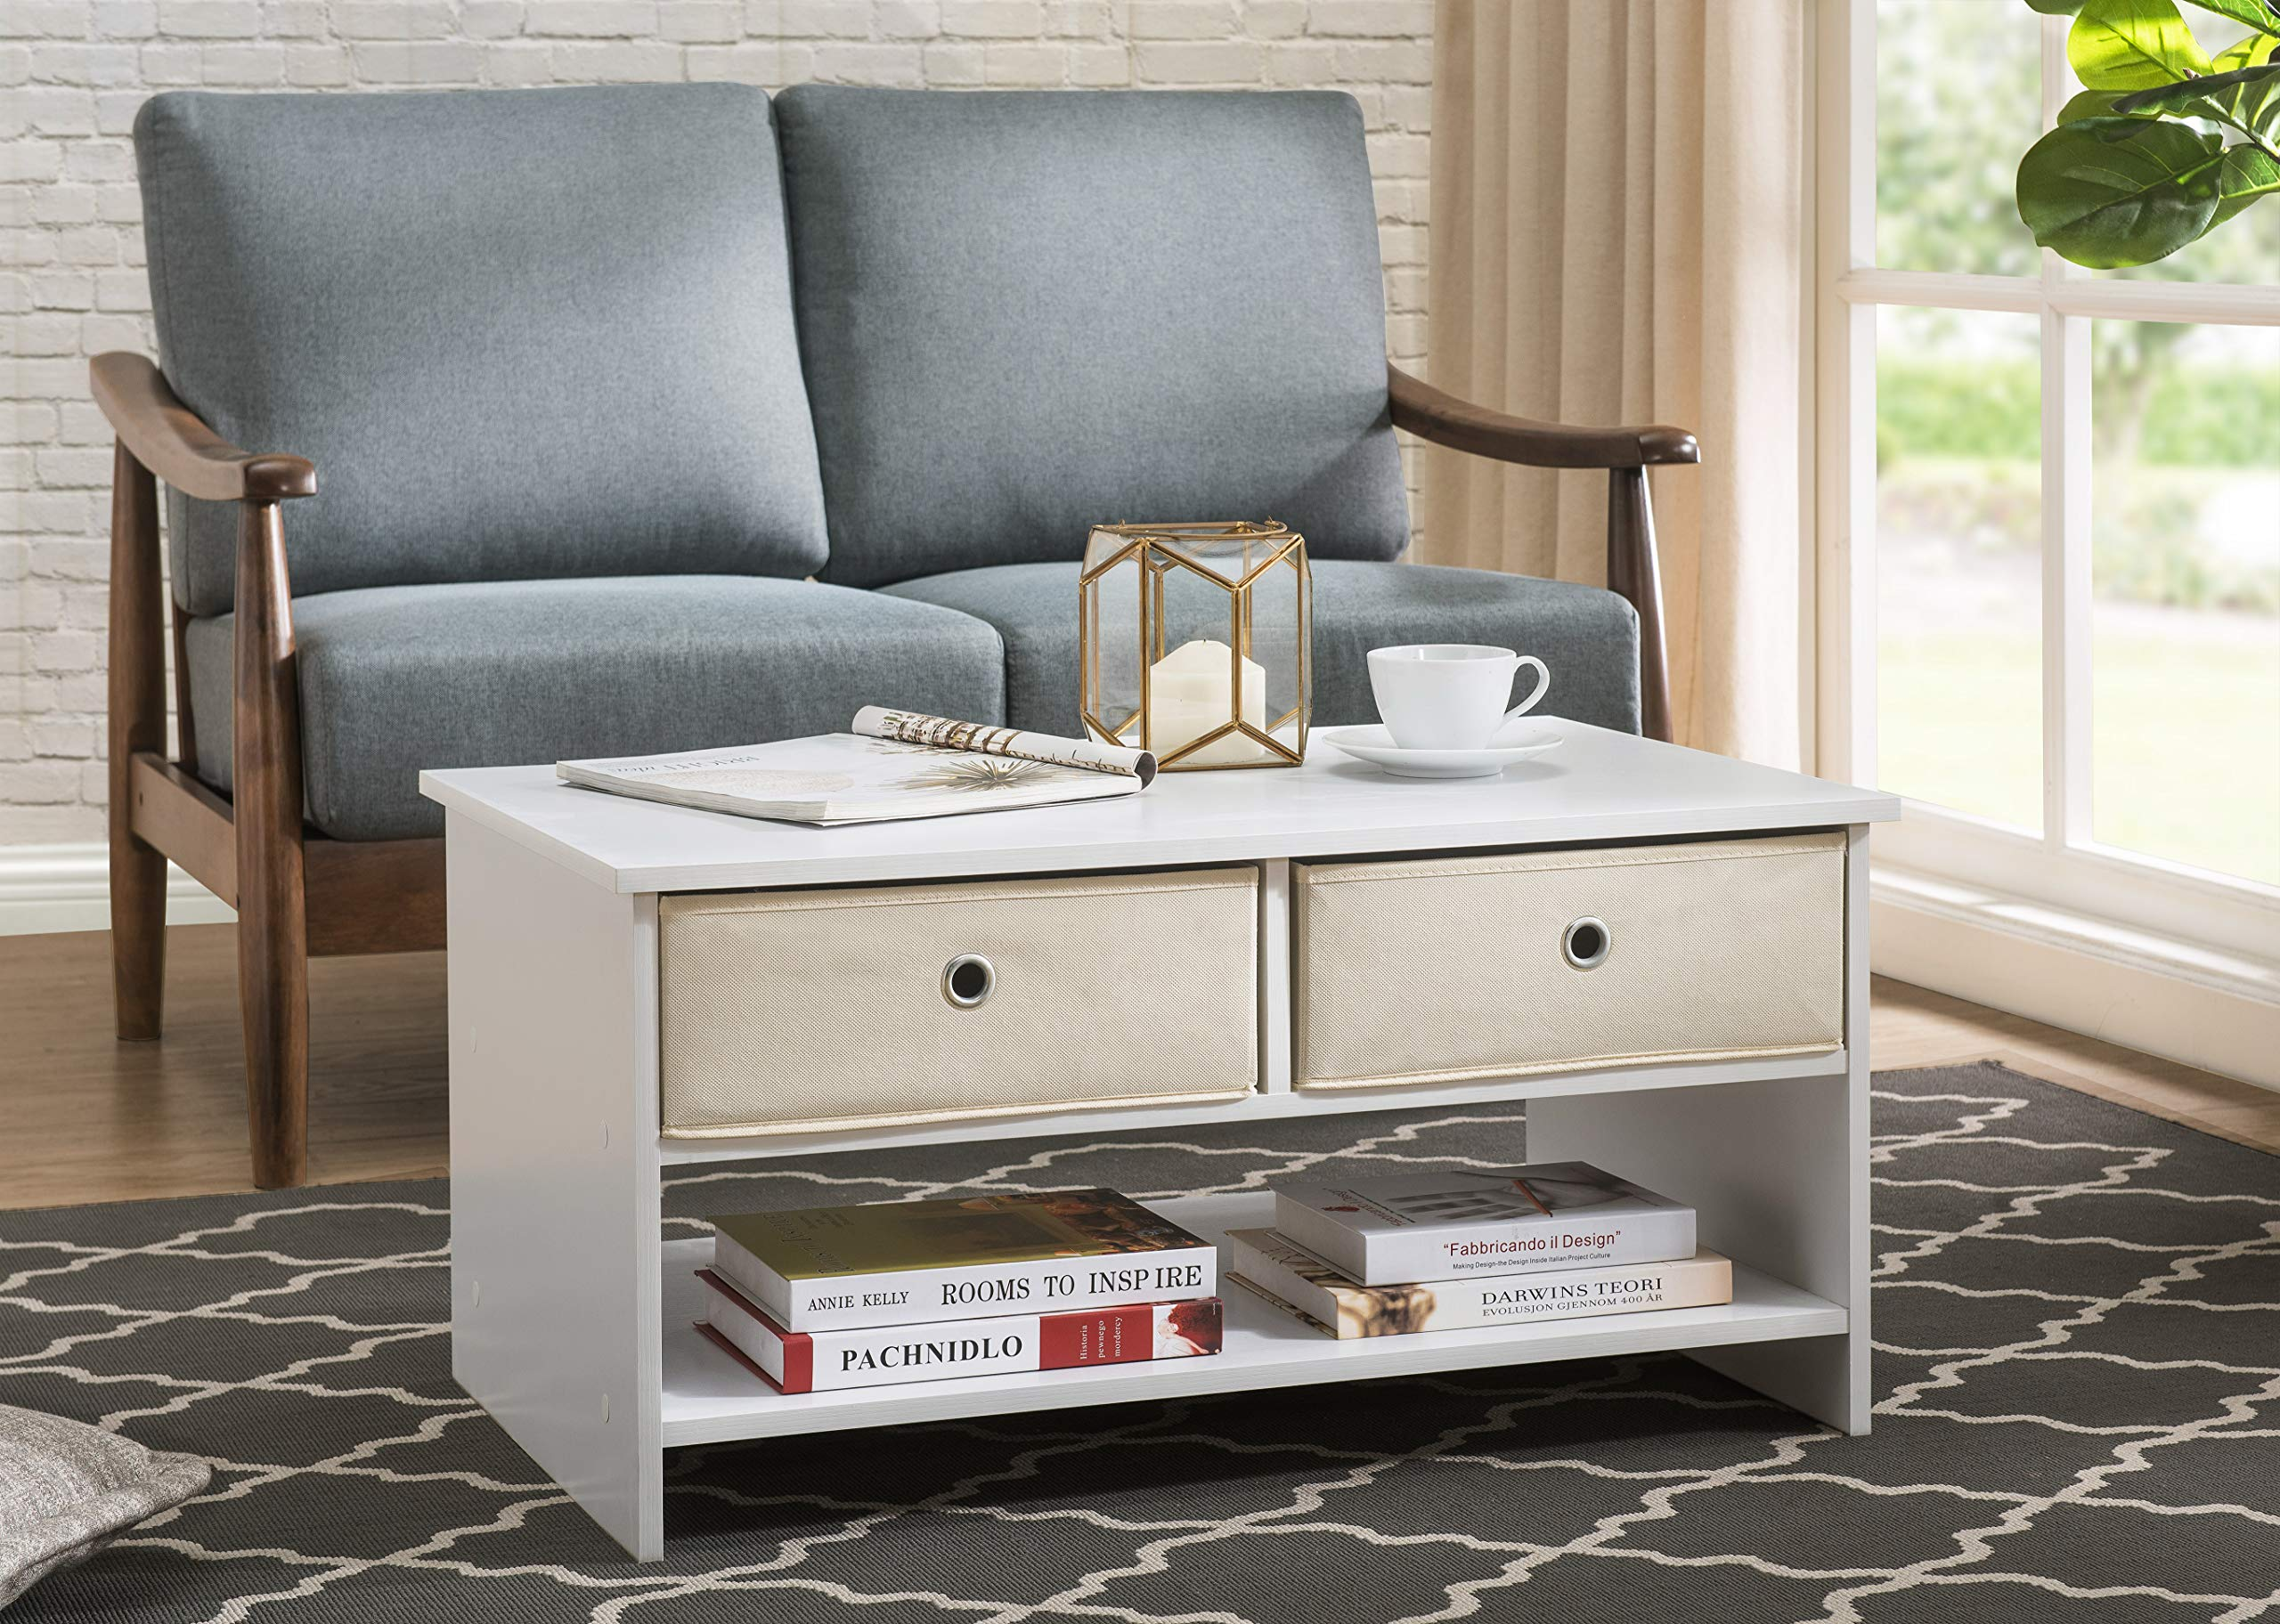 2L Lifestyle B12400004-W Westfield Coffee Table, White by 2L Lifestyle